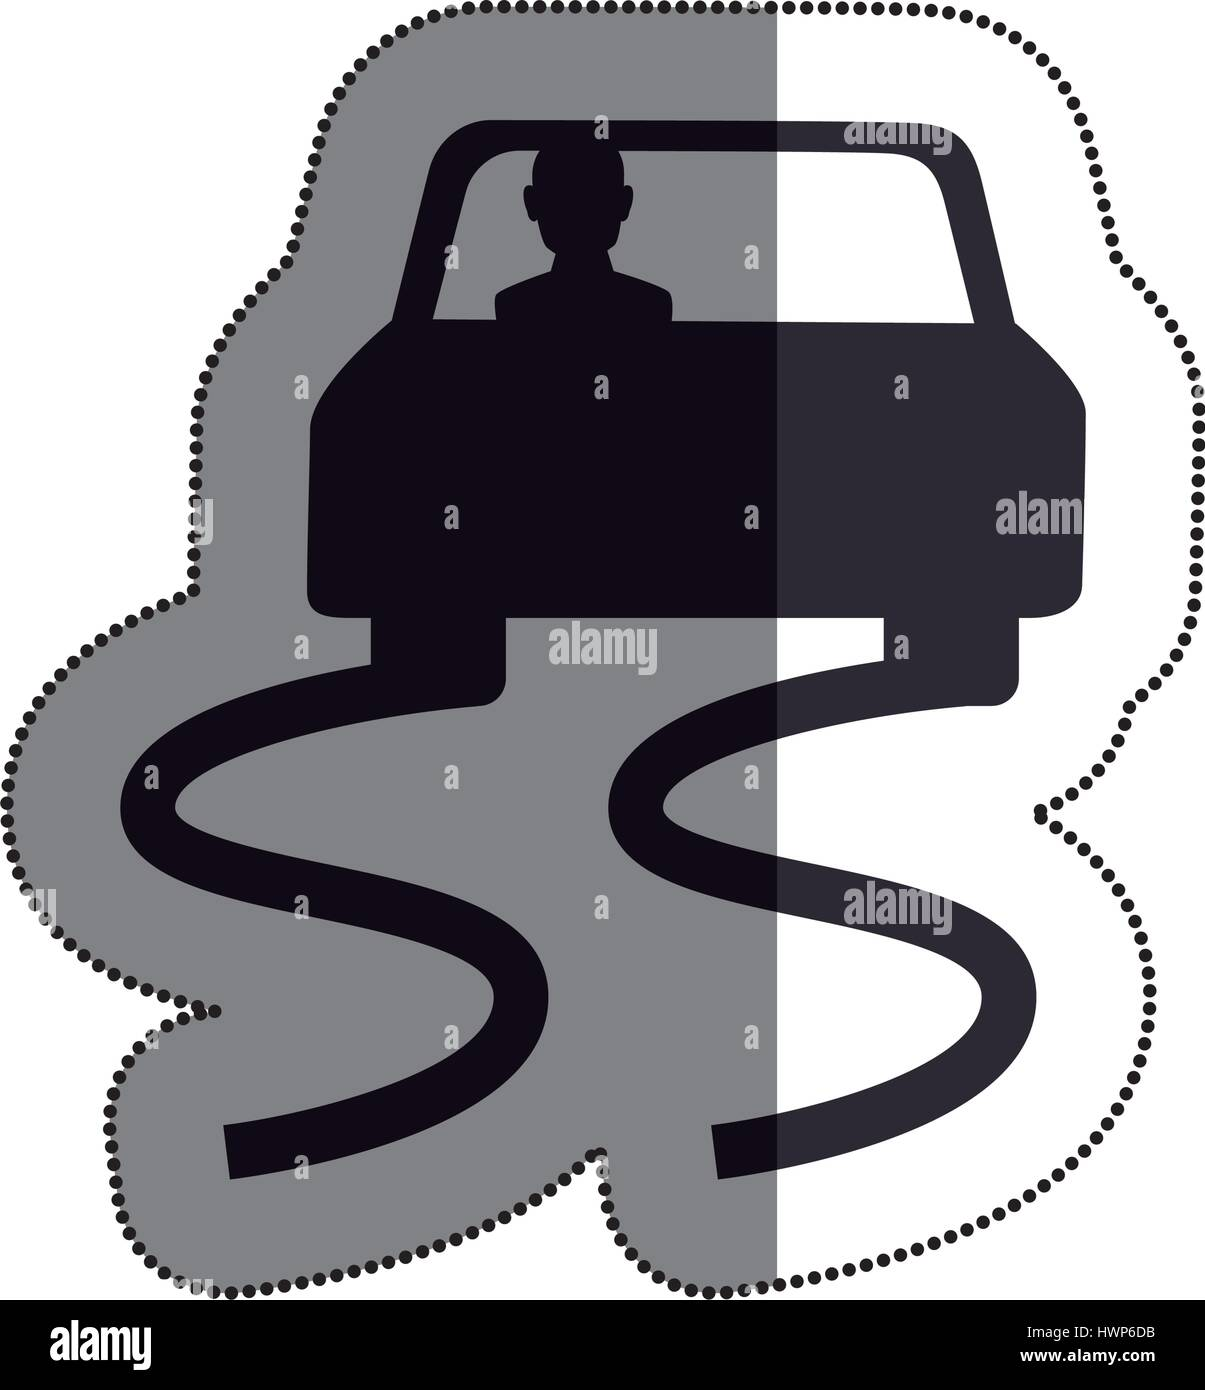 Slippery way road sign vector illustration design - Stock Image